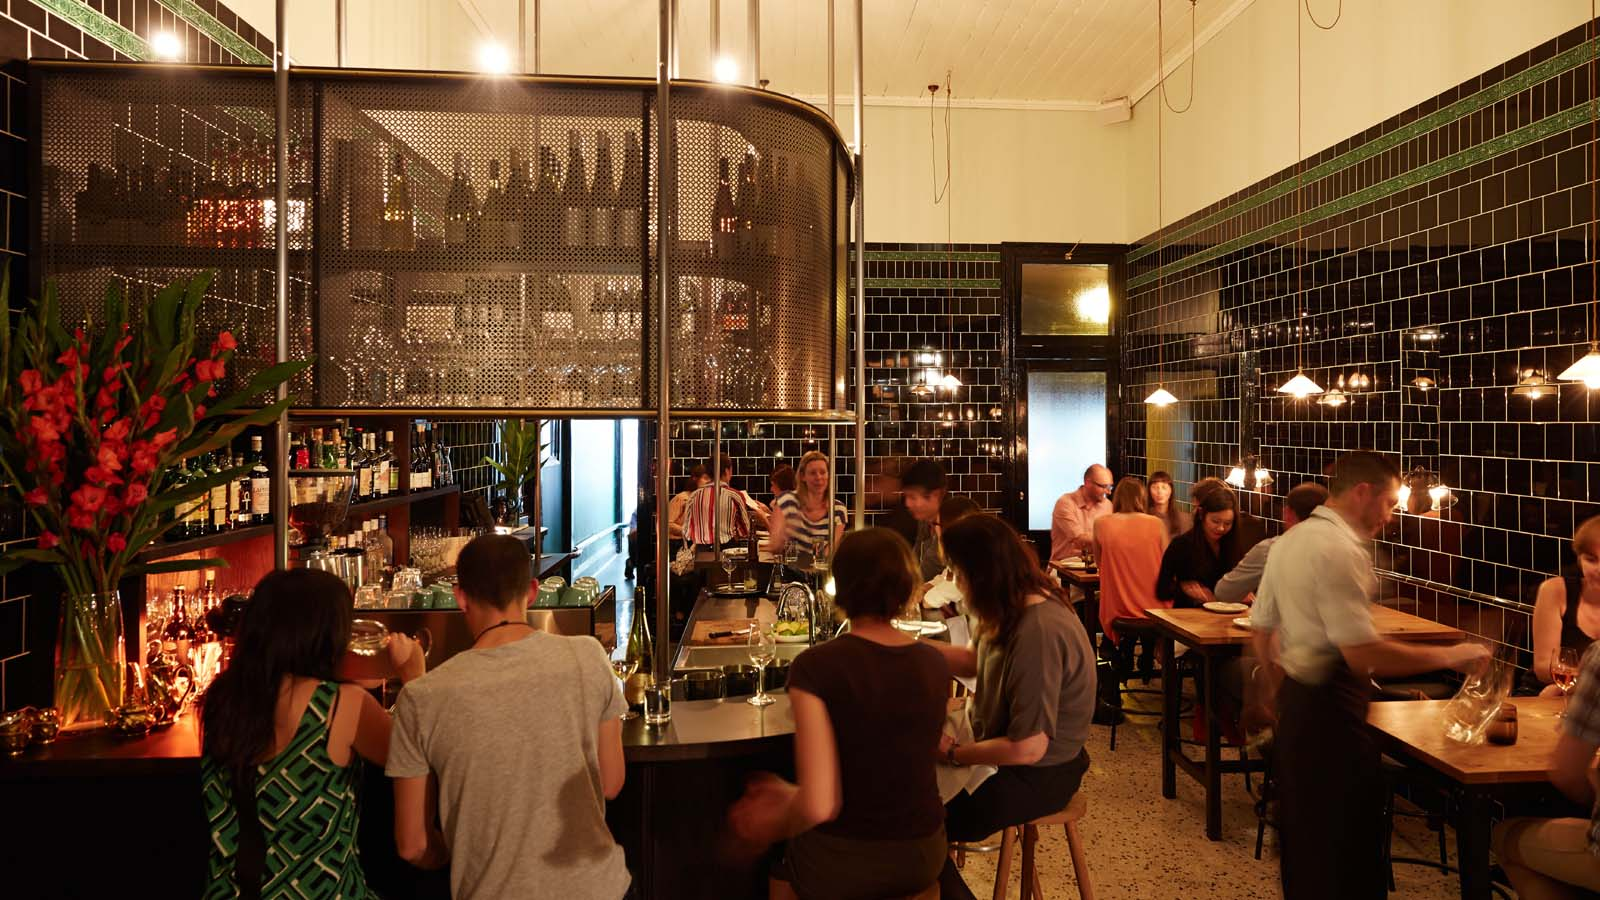 The Town Mouse interior, Carlton, Melbourne, Victoria, Australia